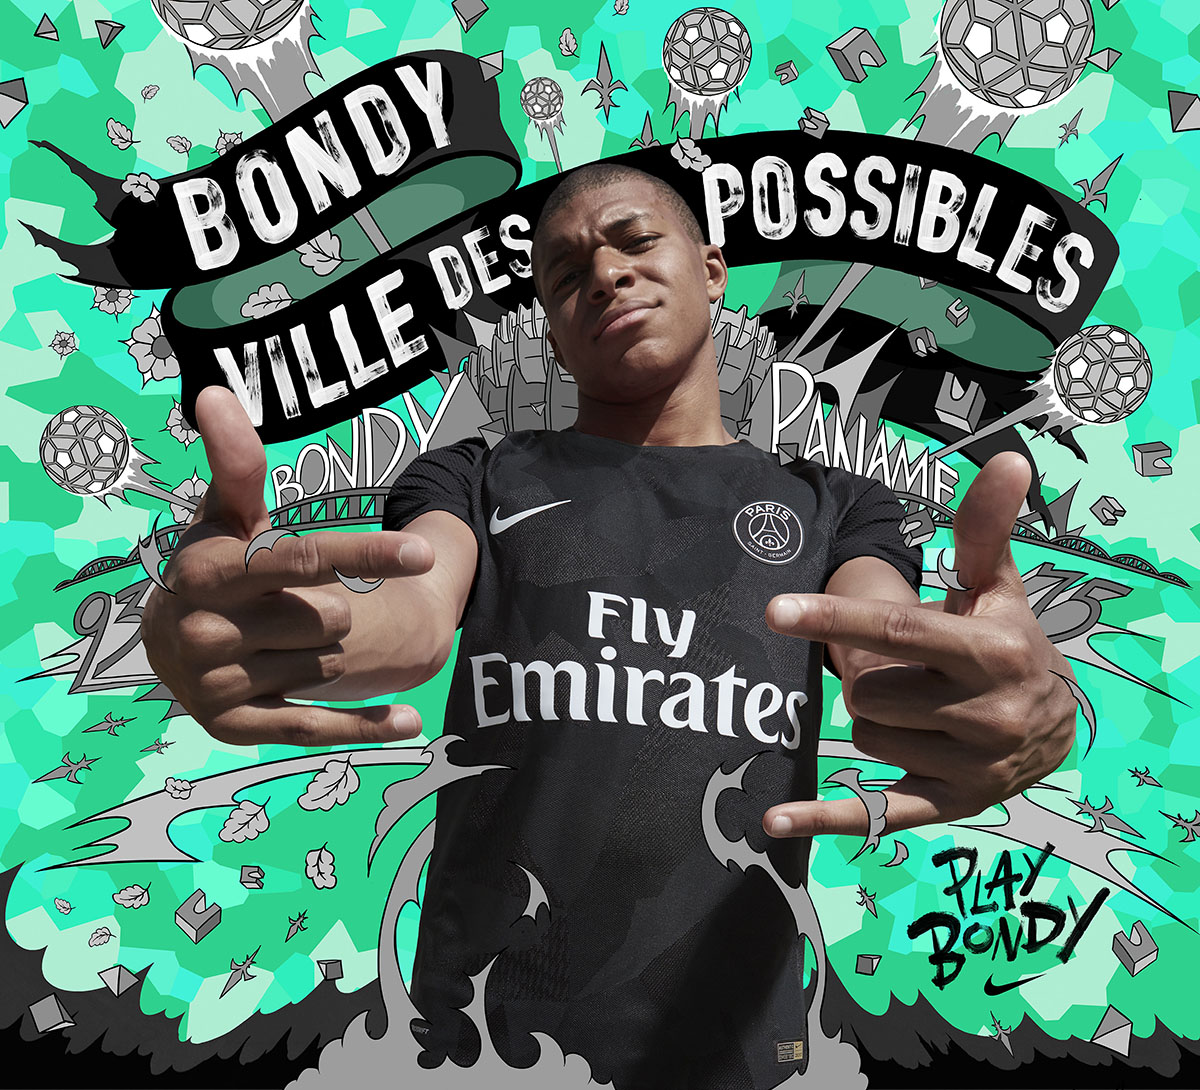 Nike_KM_Bondy_poster_PREVIEW